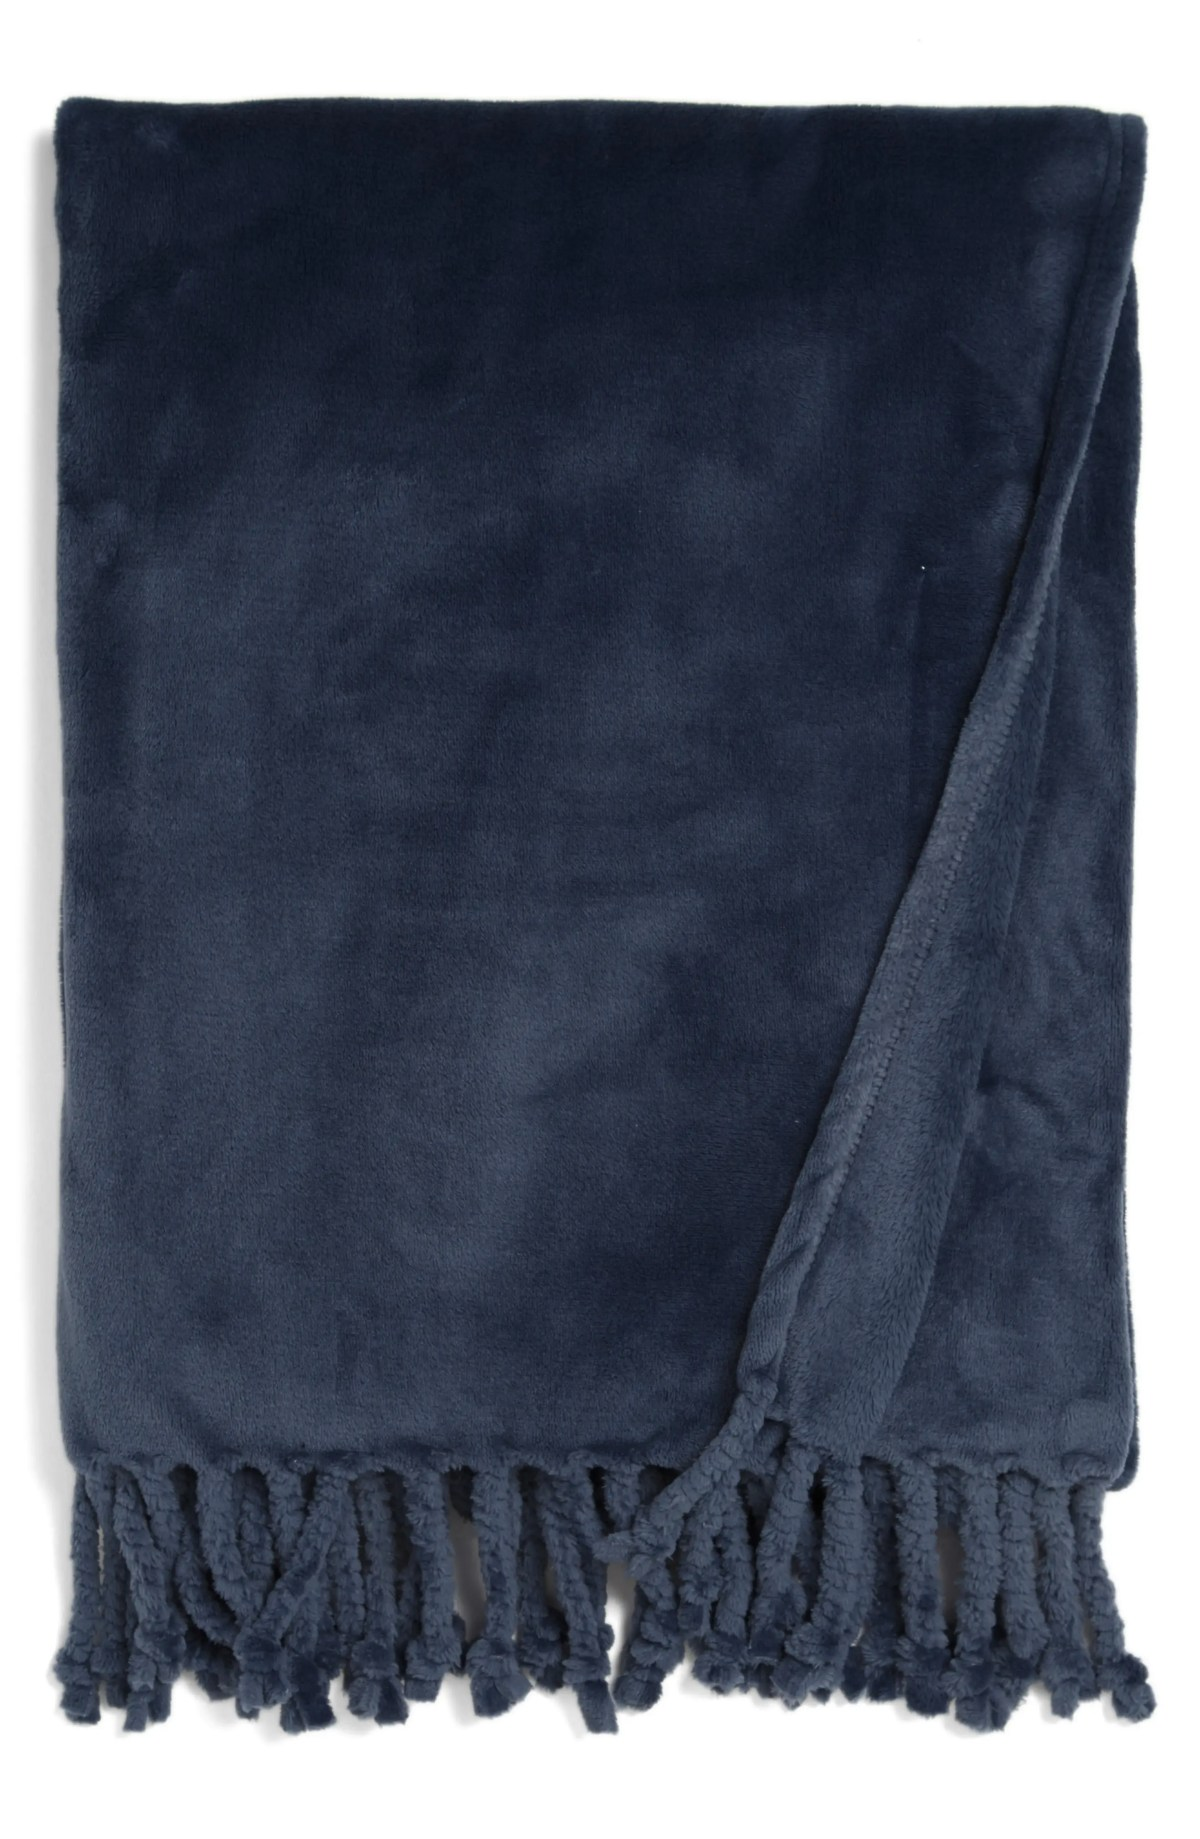 NORDSTROM AT HOME Kennebunk Bliss Plush Throw, Main, color, NAVY BLUE